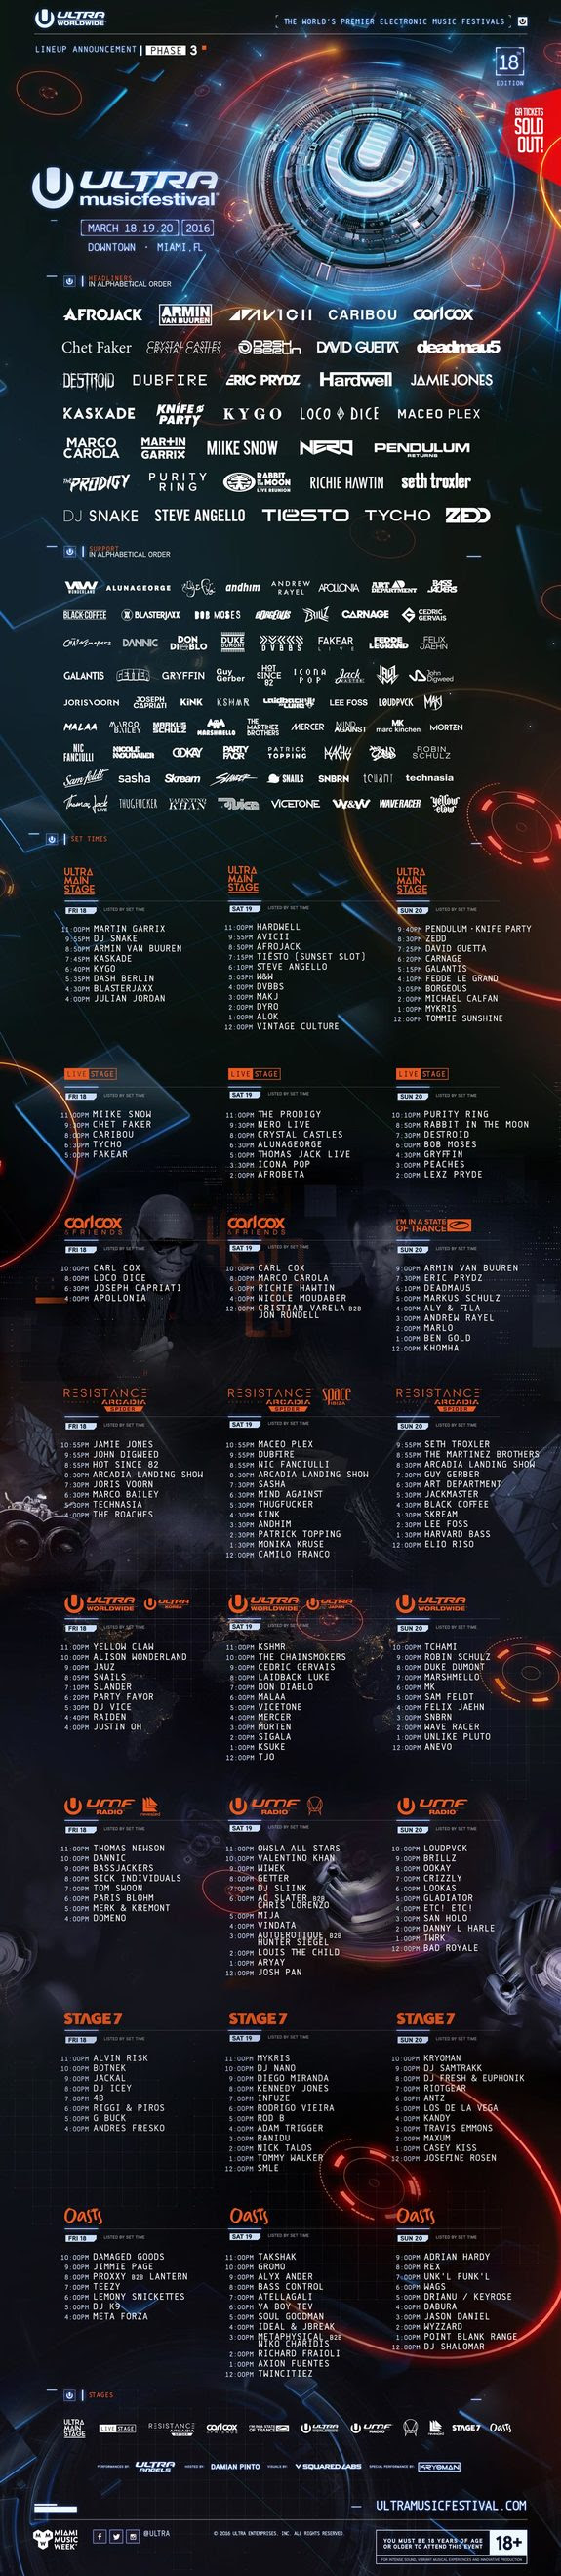 The final lineup and set times for the 2016 edition of Ultra Music Festival.